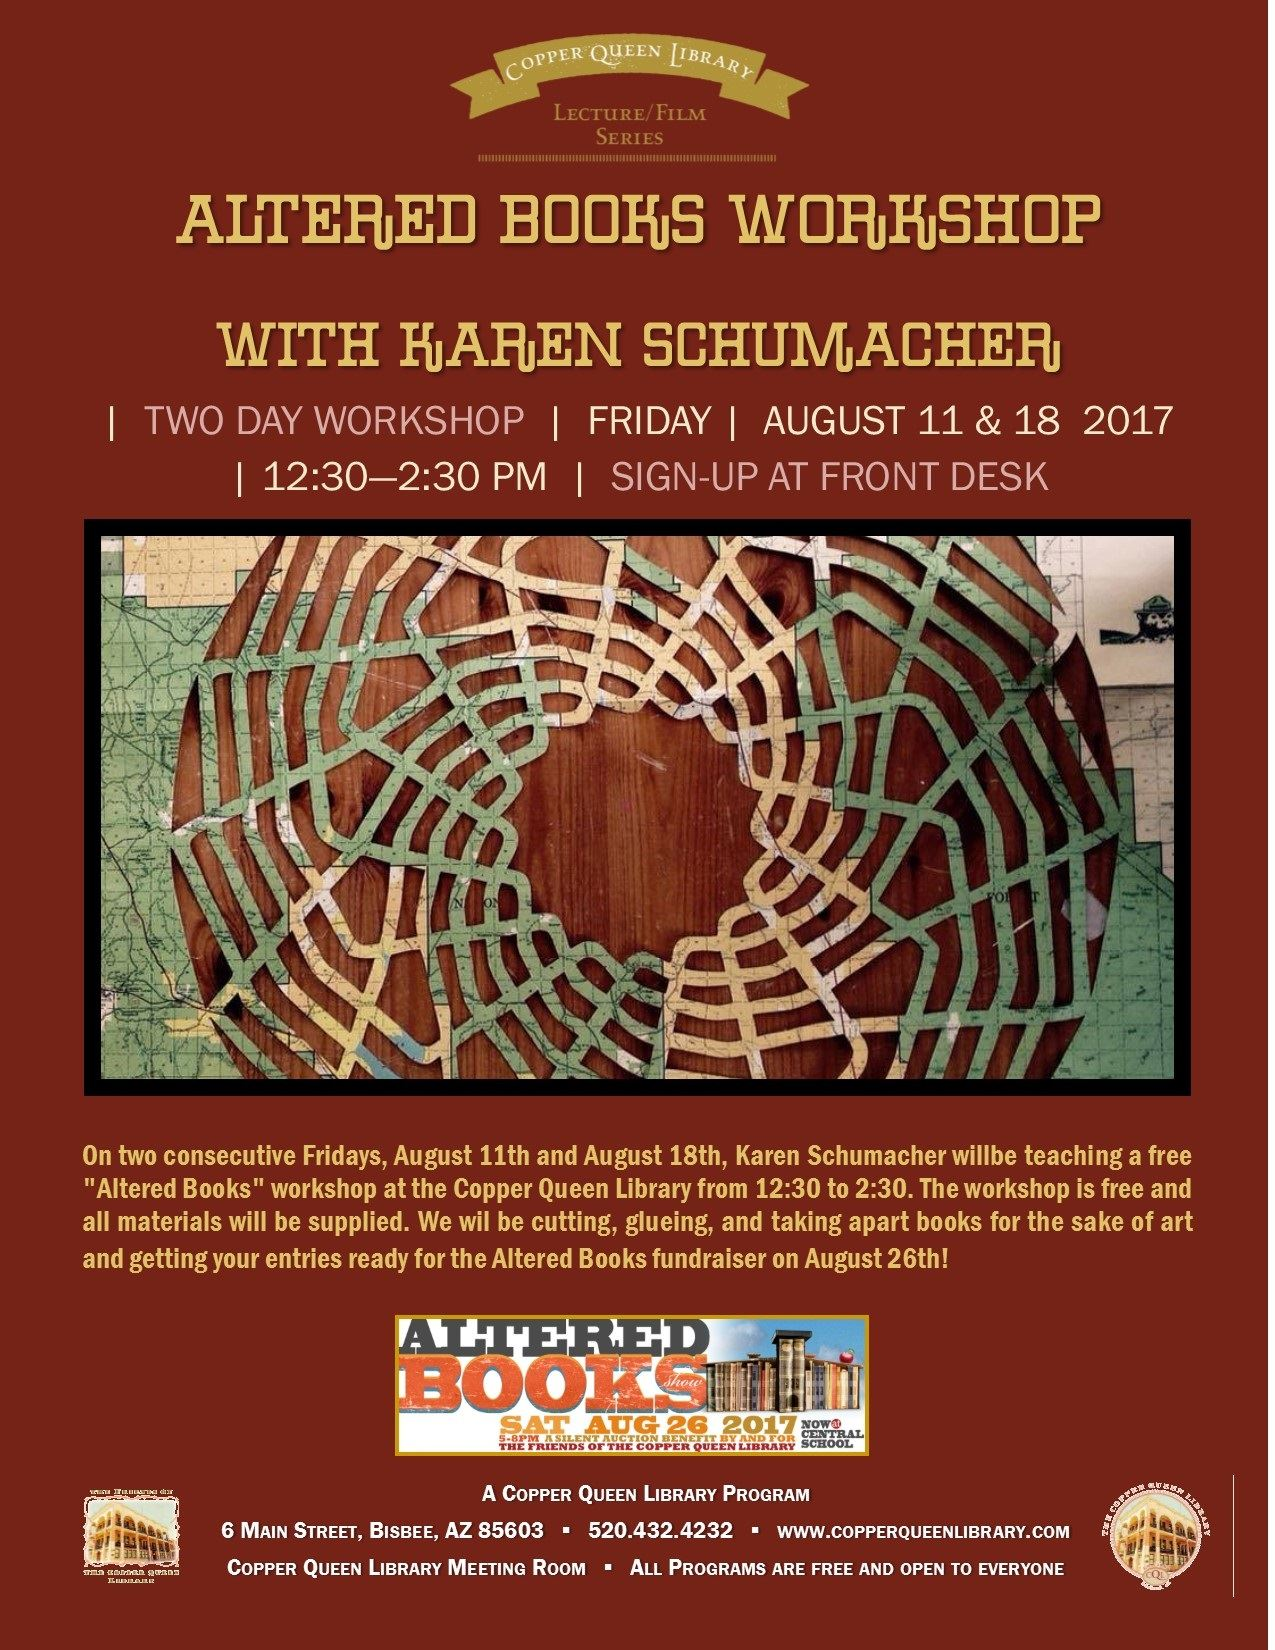 ALTERED BOOKS WORKSHOP AUGUST 2017 POSTER 8.5 X 11